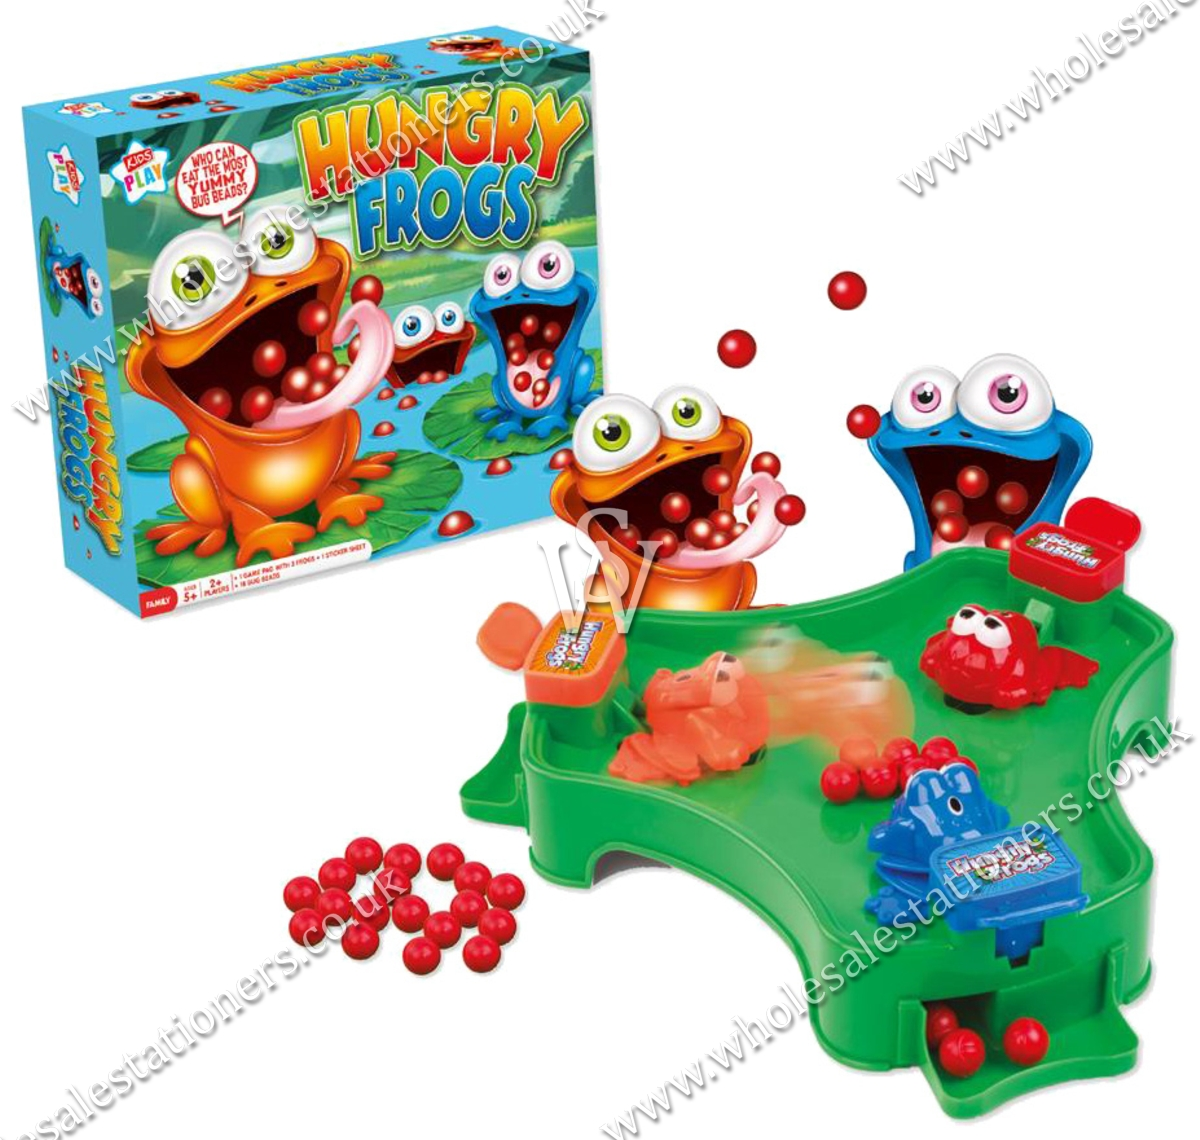 HUNGRY FROGS GAME, 2 Player, Age 5+